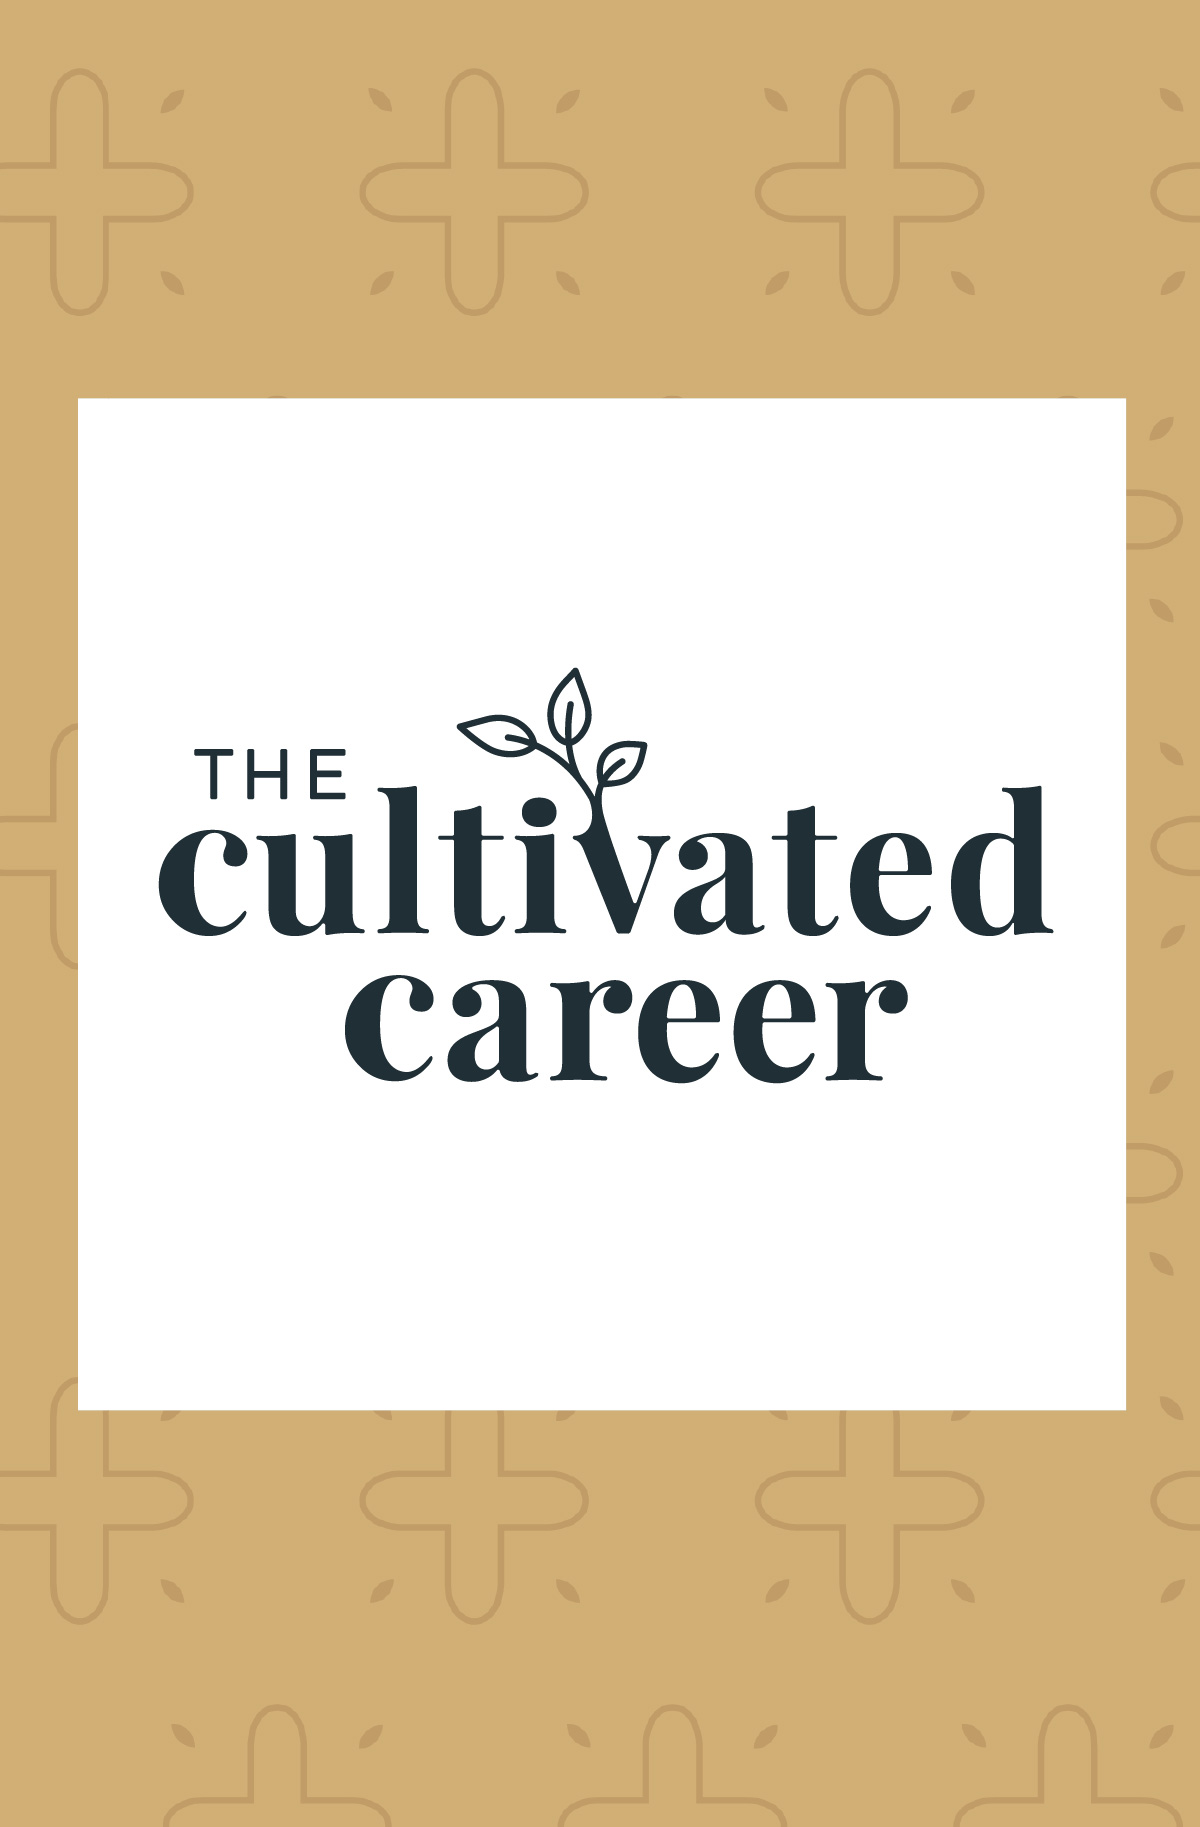 The-Cultivated-Career-Logo.jpg